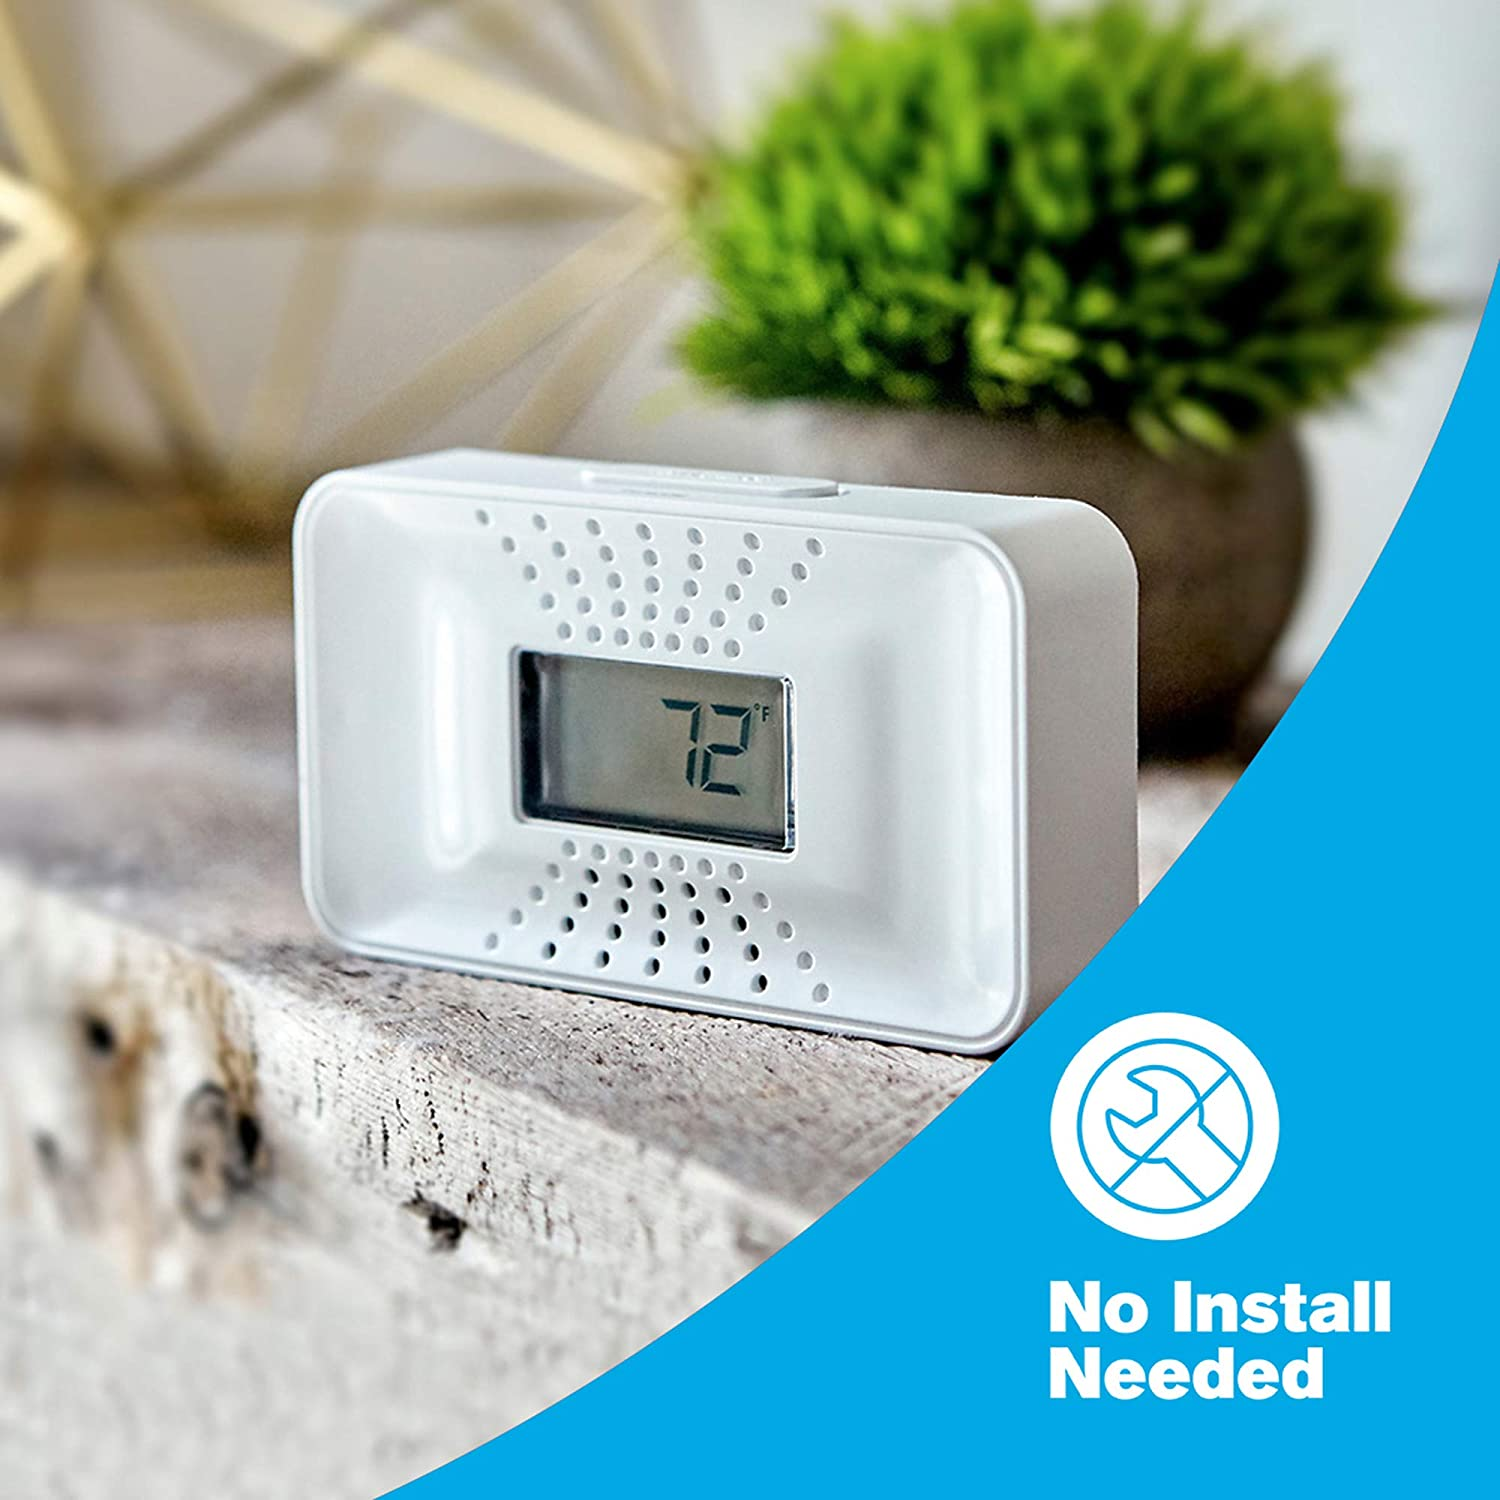 Battery Operated First Alert CO400 Carbon Monoxide Detector 2-Pack